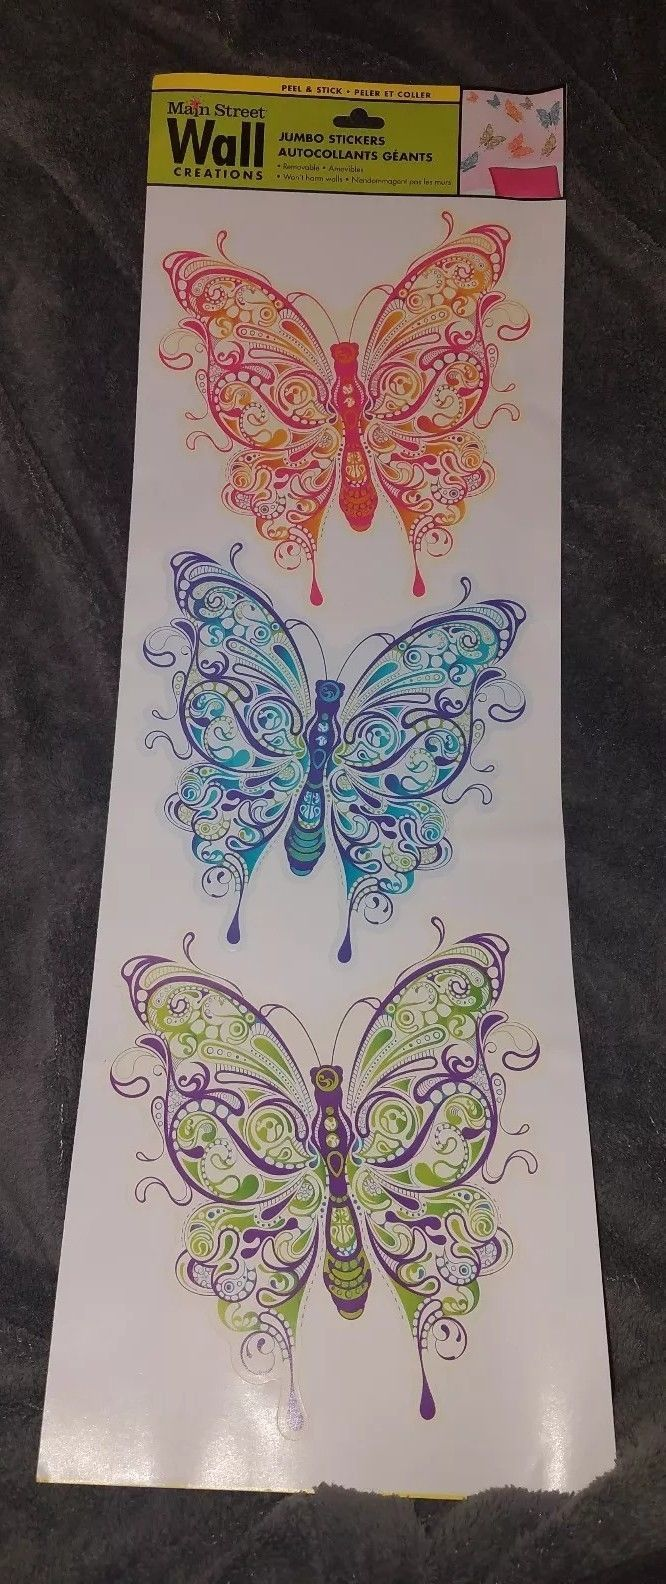 New Main Street Wall Creations Jumbo Stickers Fancy Paisley Butterflies Ebay Wall Creations Vinyl Wall Decals Nursery Custom Vinyl Wall Decals